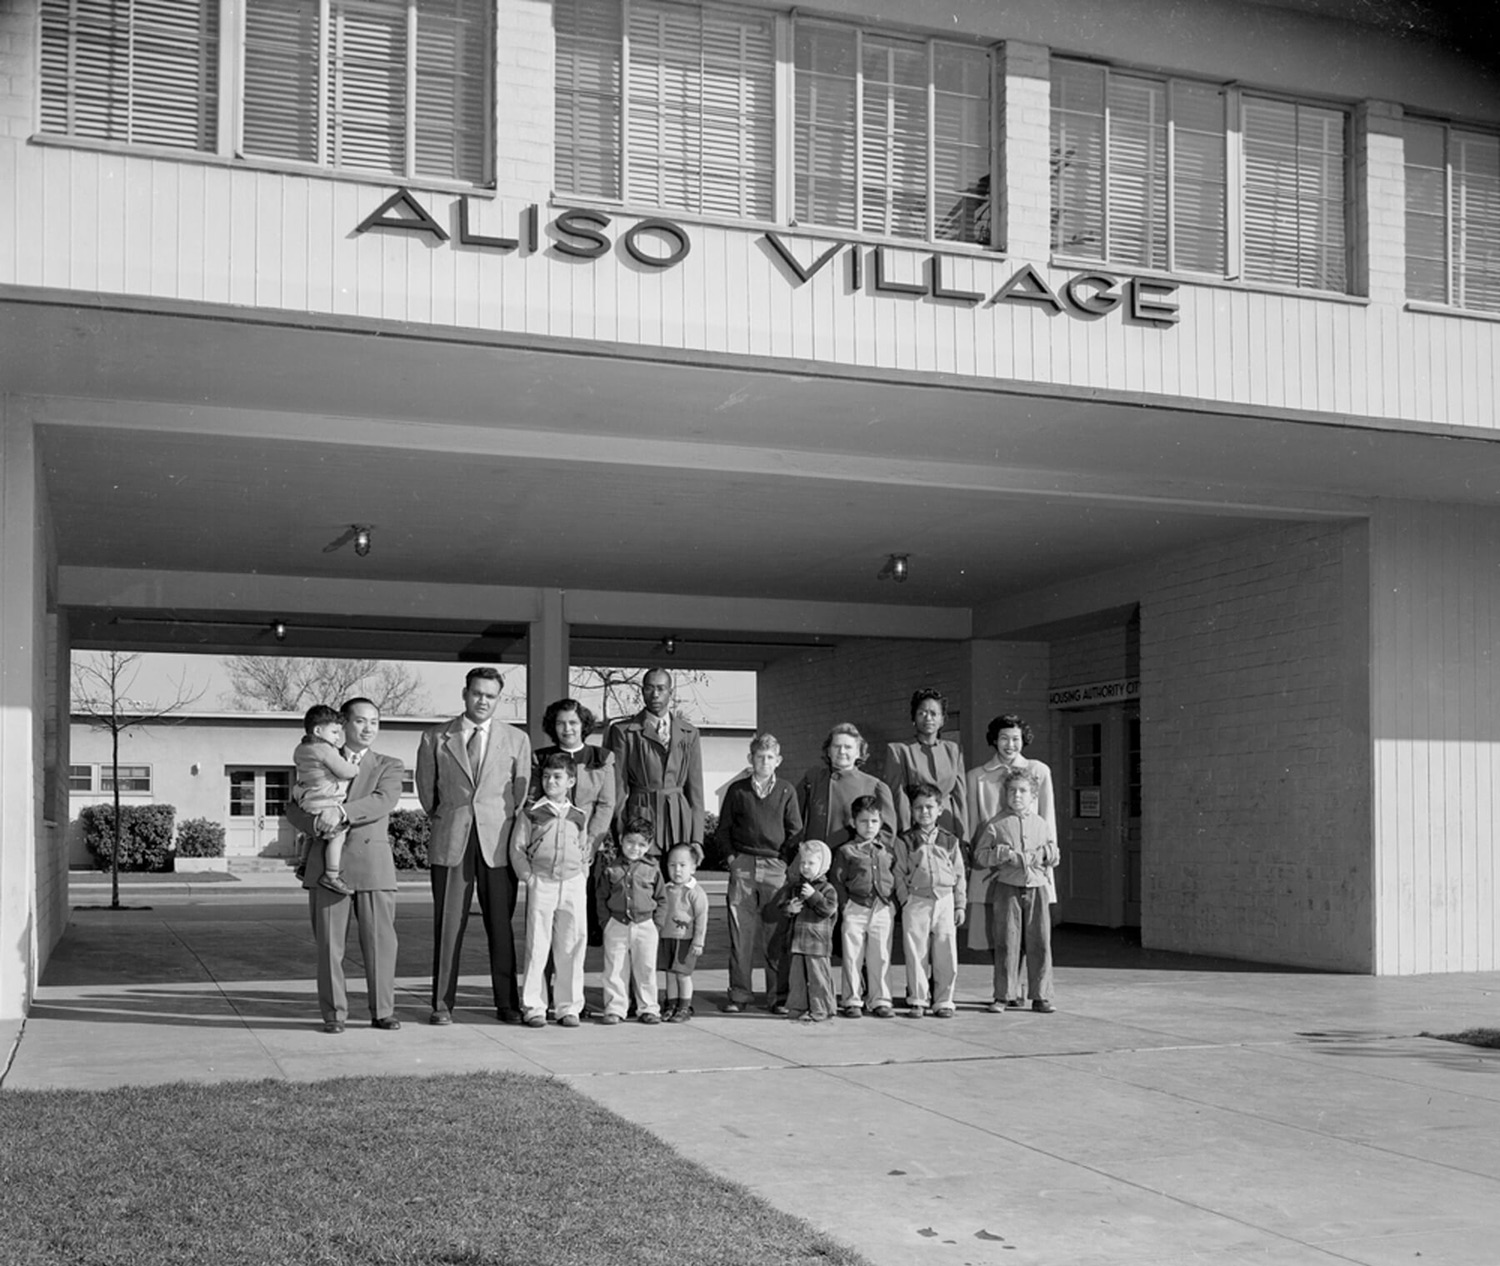 Families pose in front of the Aliso Village apartment complex.